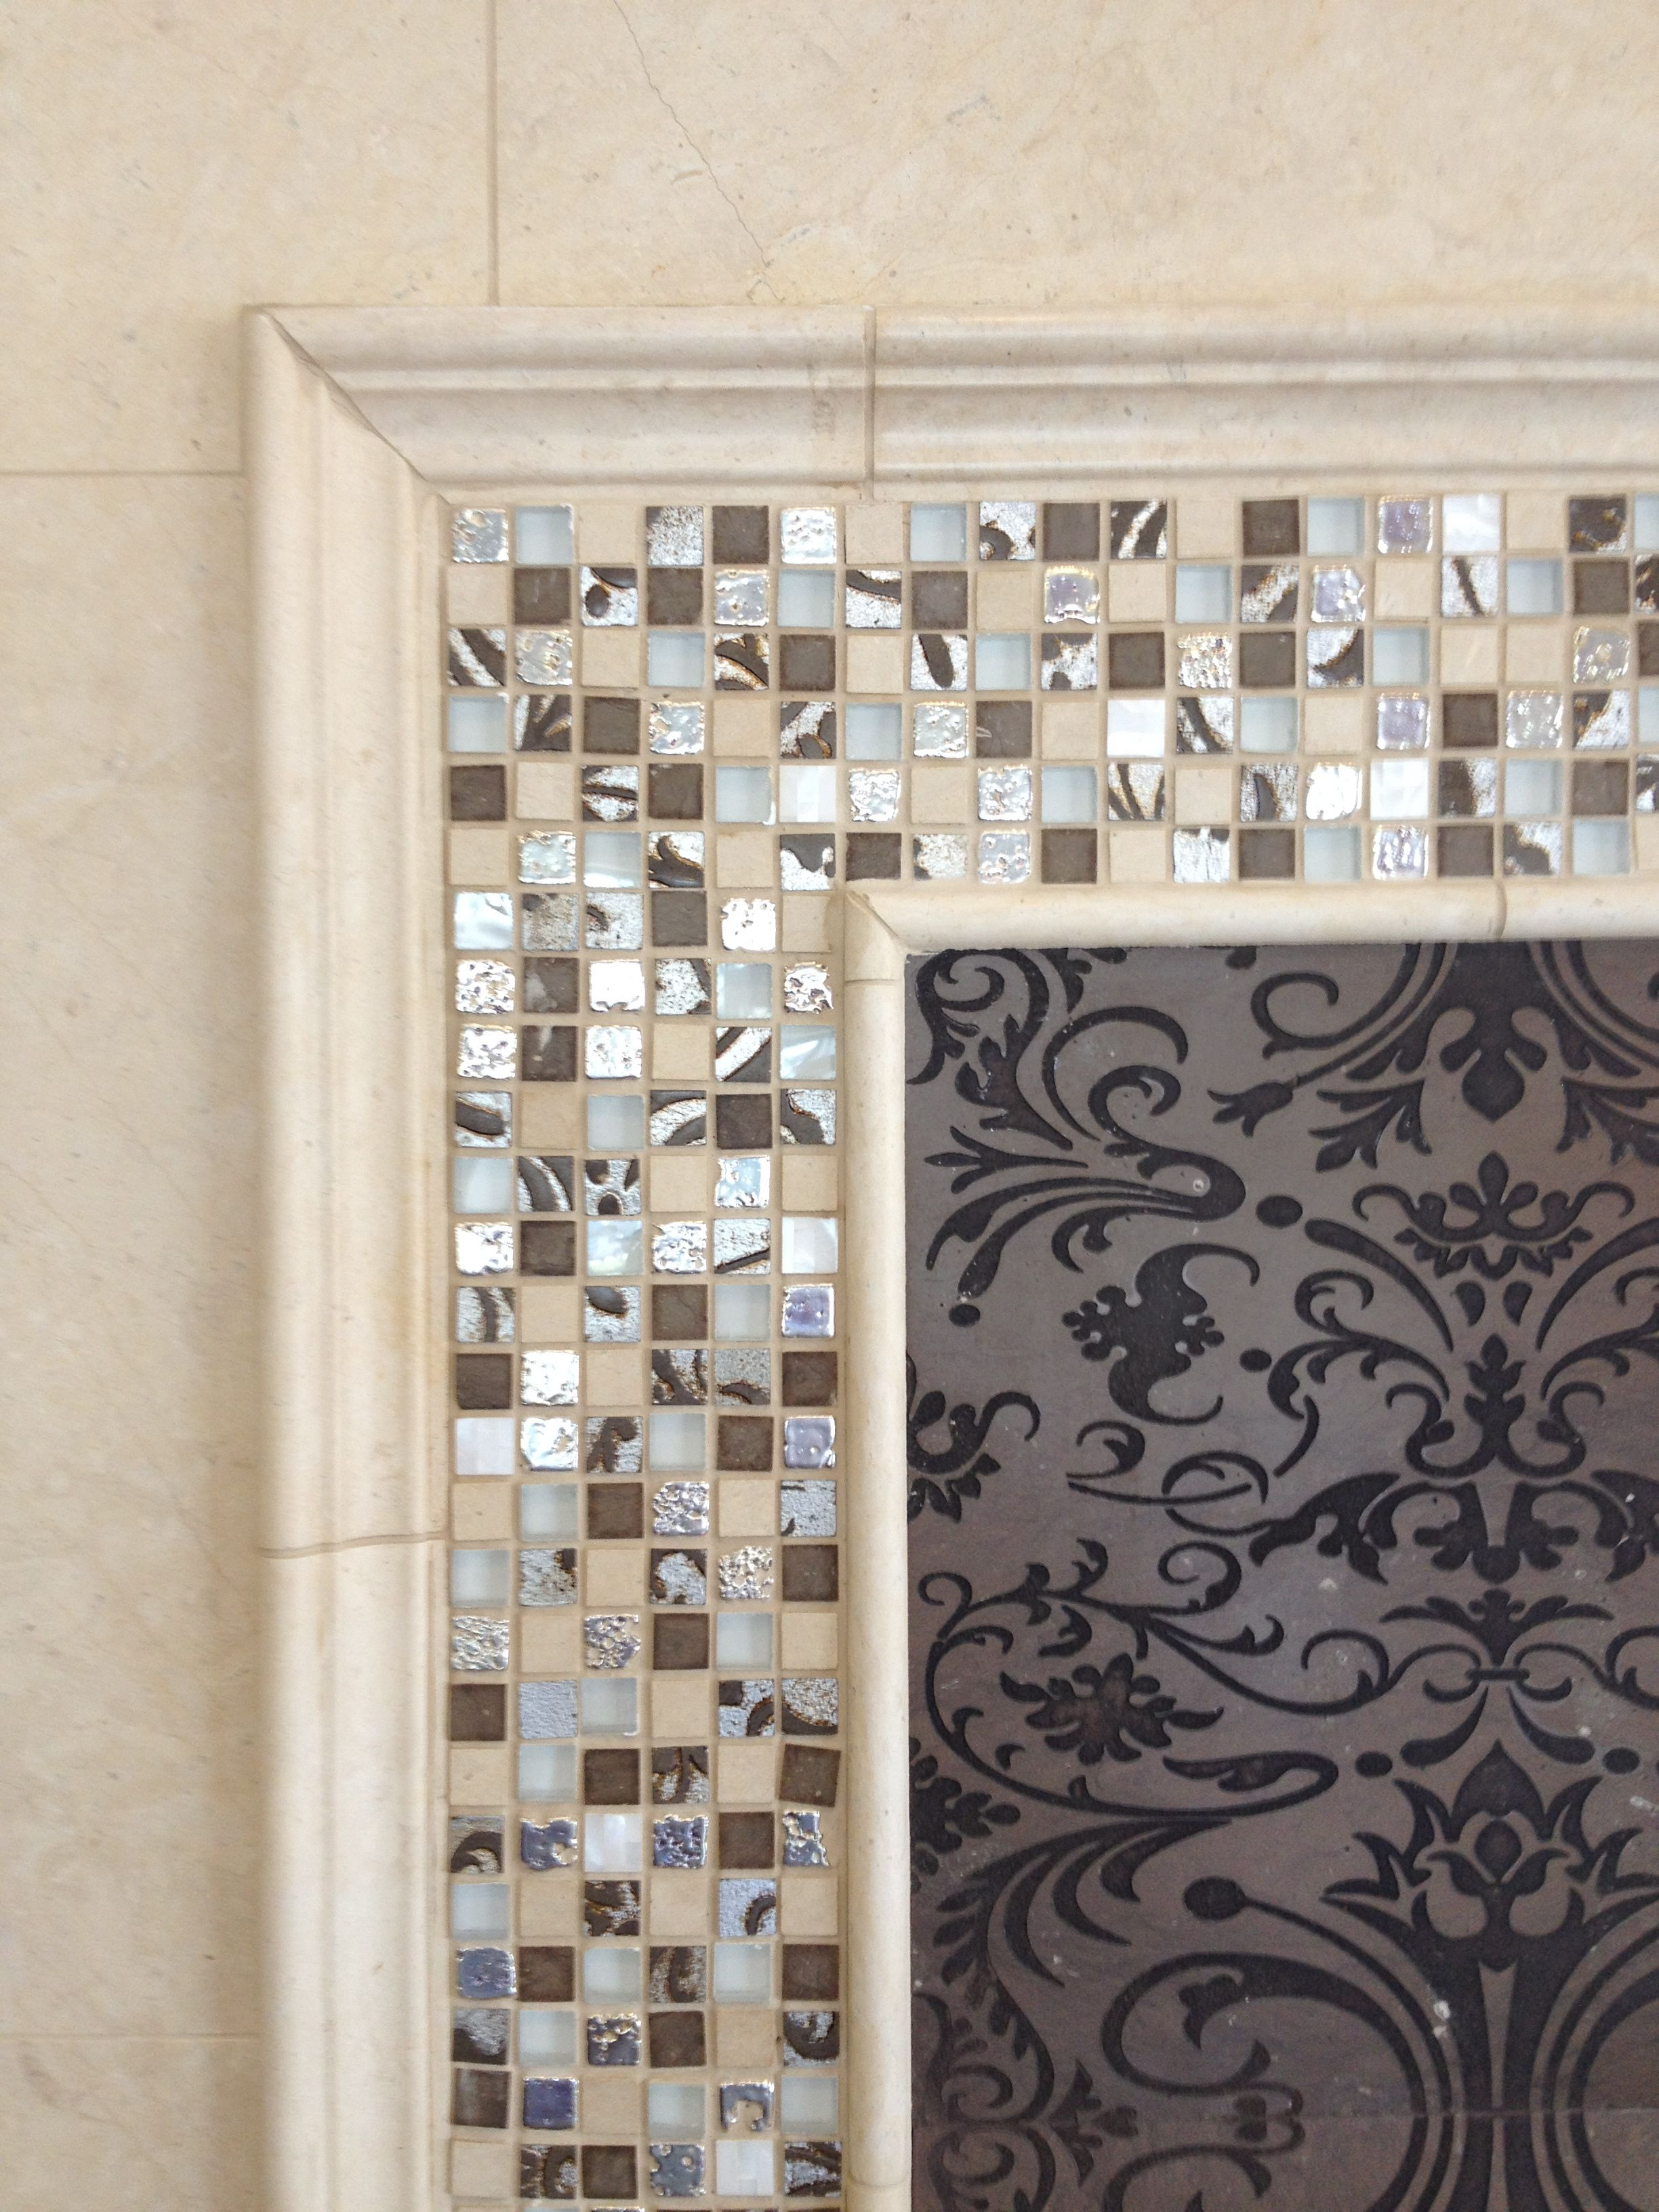 Bedrosians Aec Tile Suave Series In Mink 4 X4 W Bean Wash